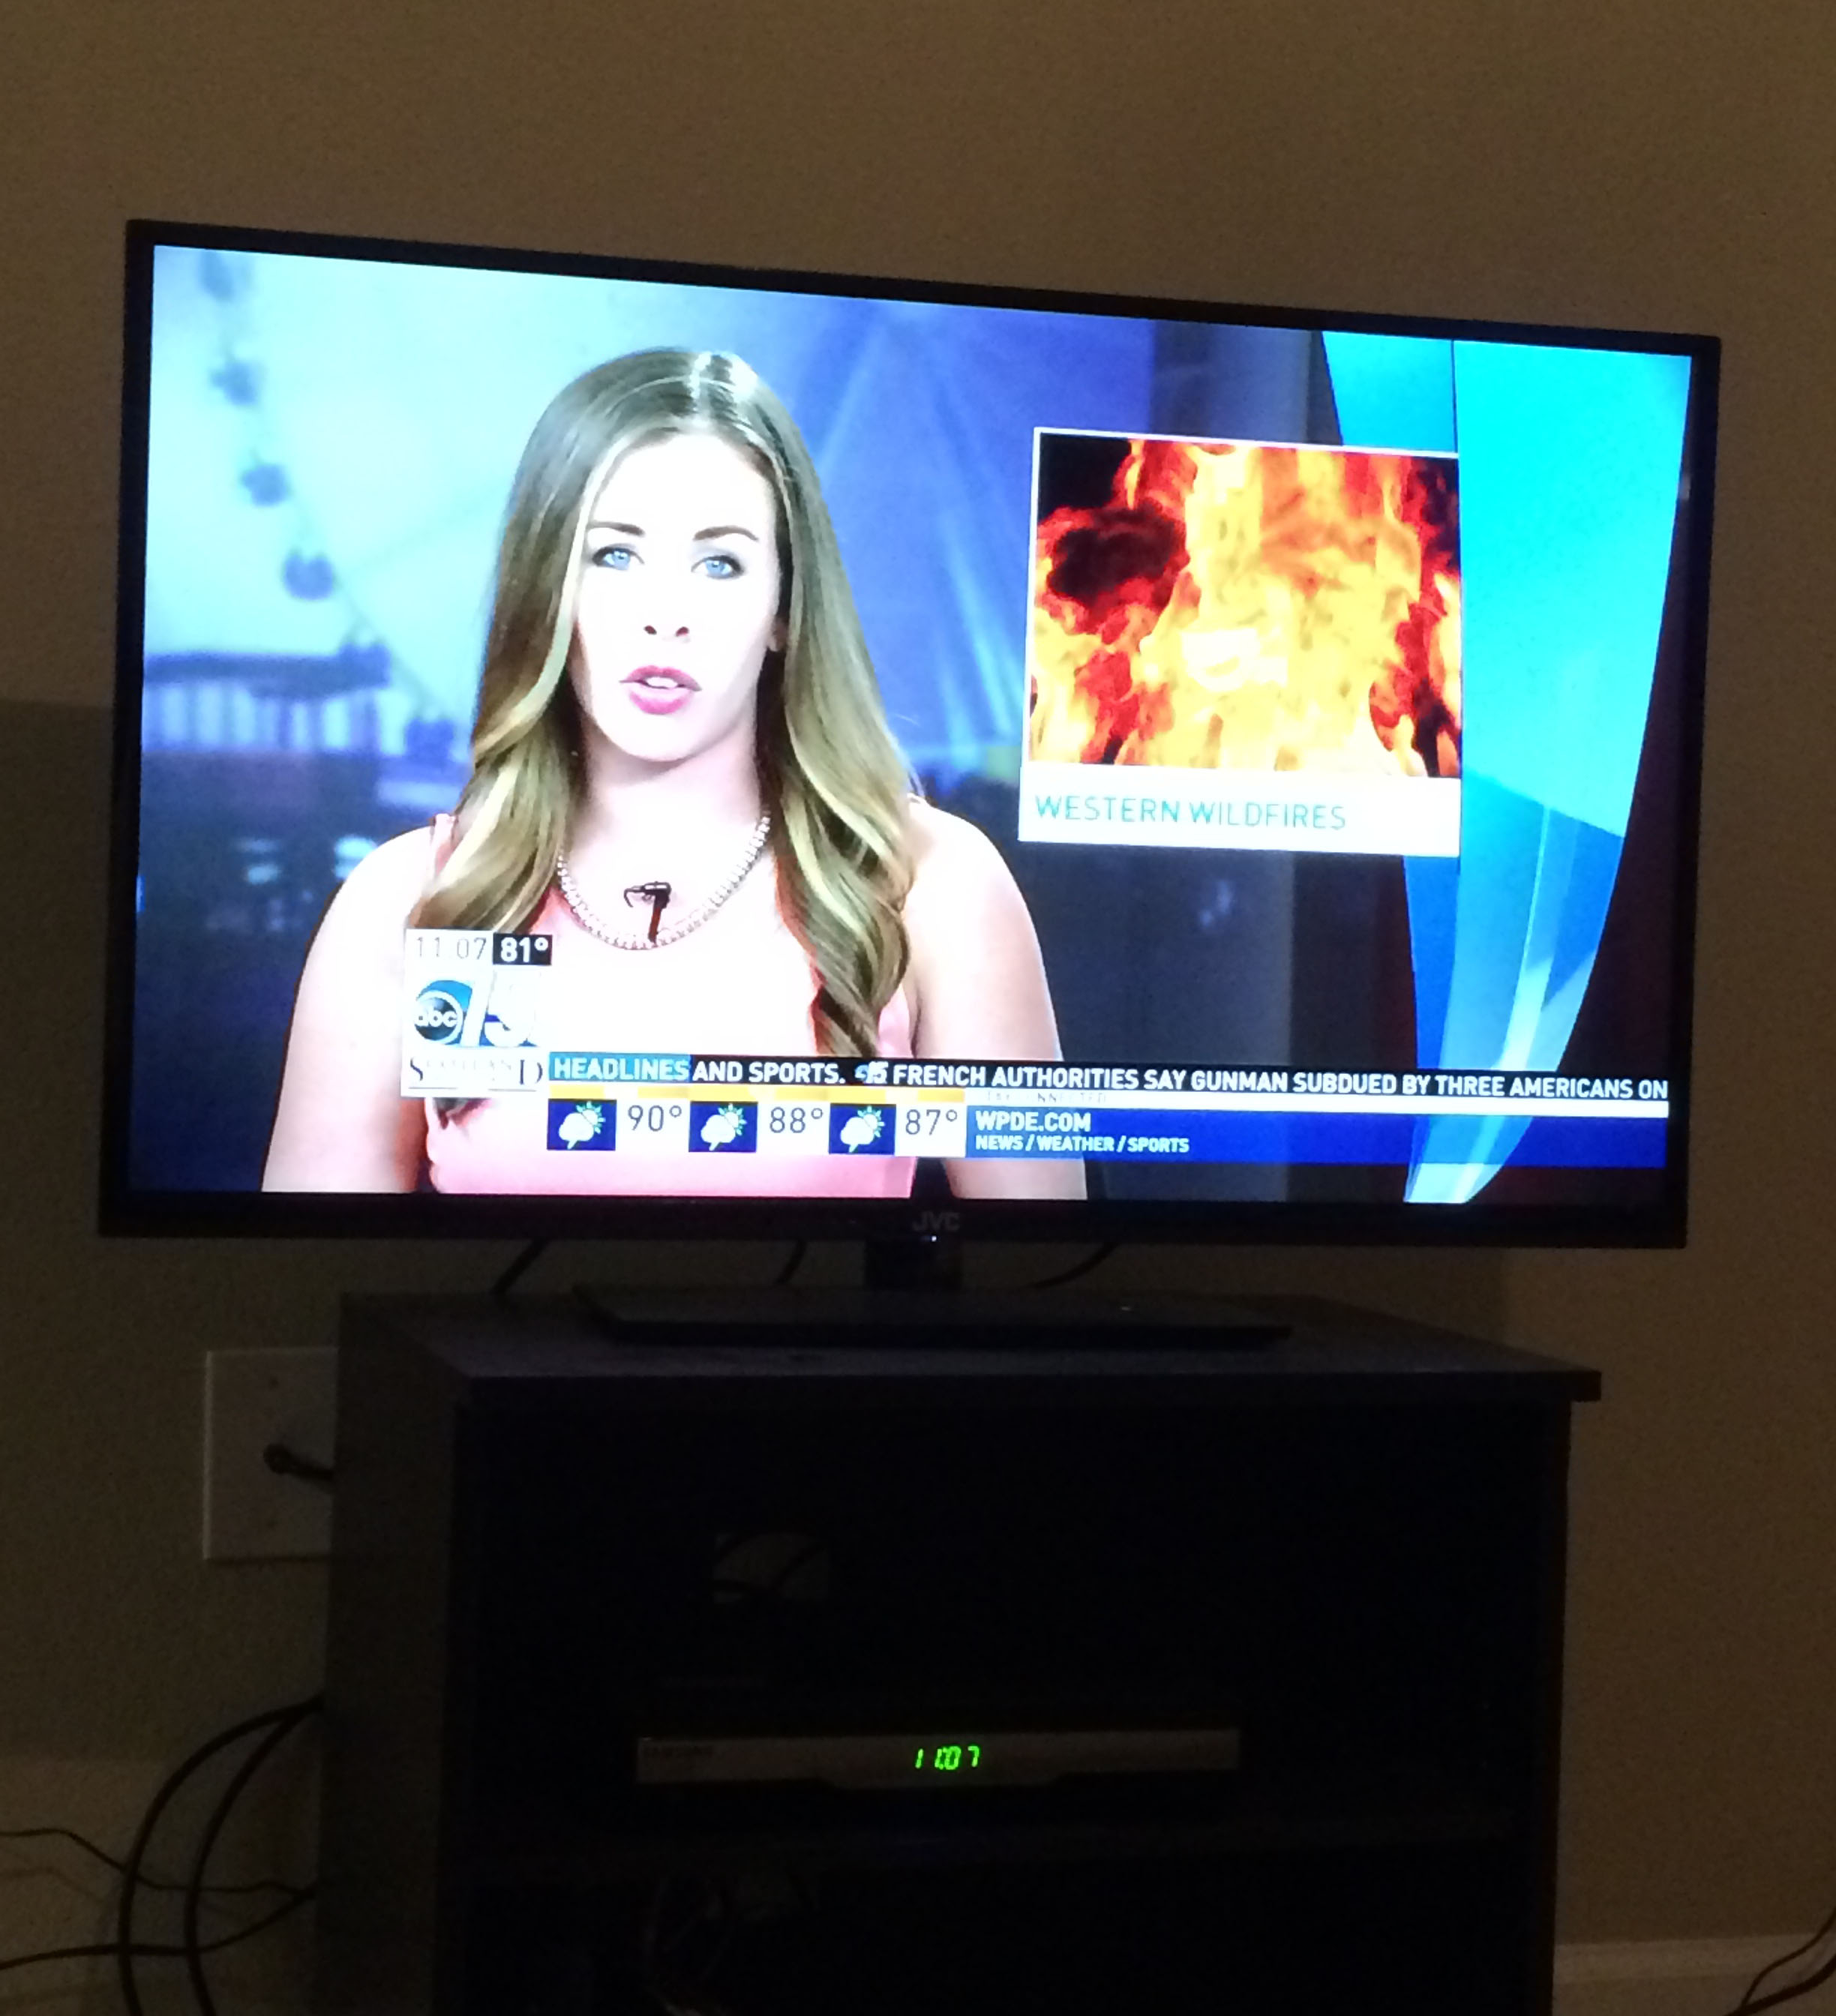 I watched the local Myrtle Beach WPDE broadcast last night as anchorwoman Alex Heaton talked about the Washington state wildfires.